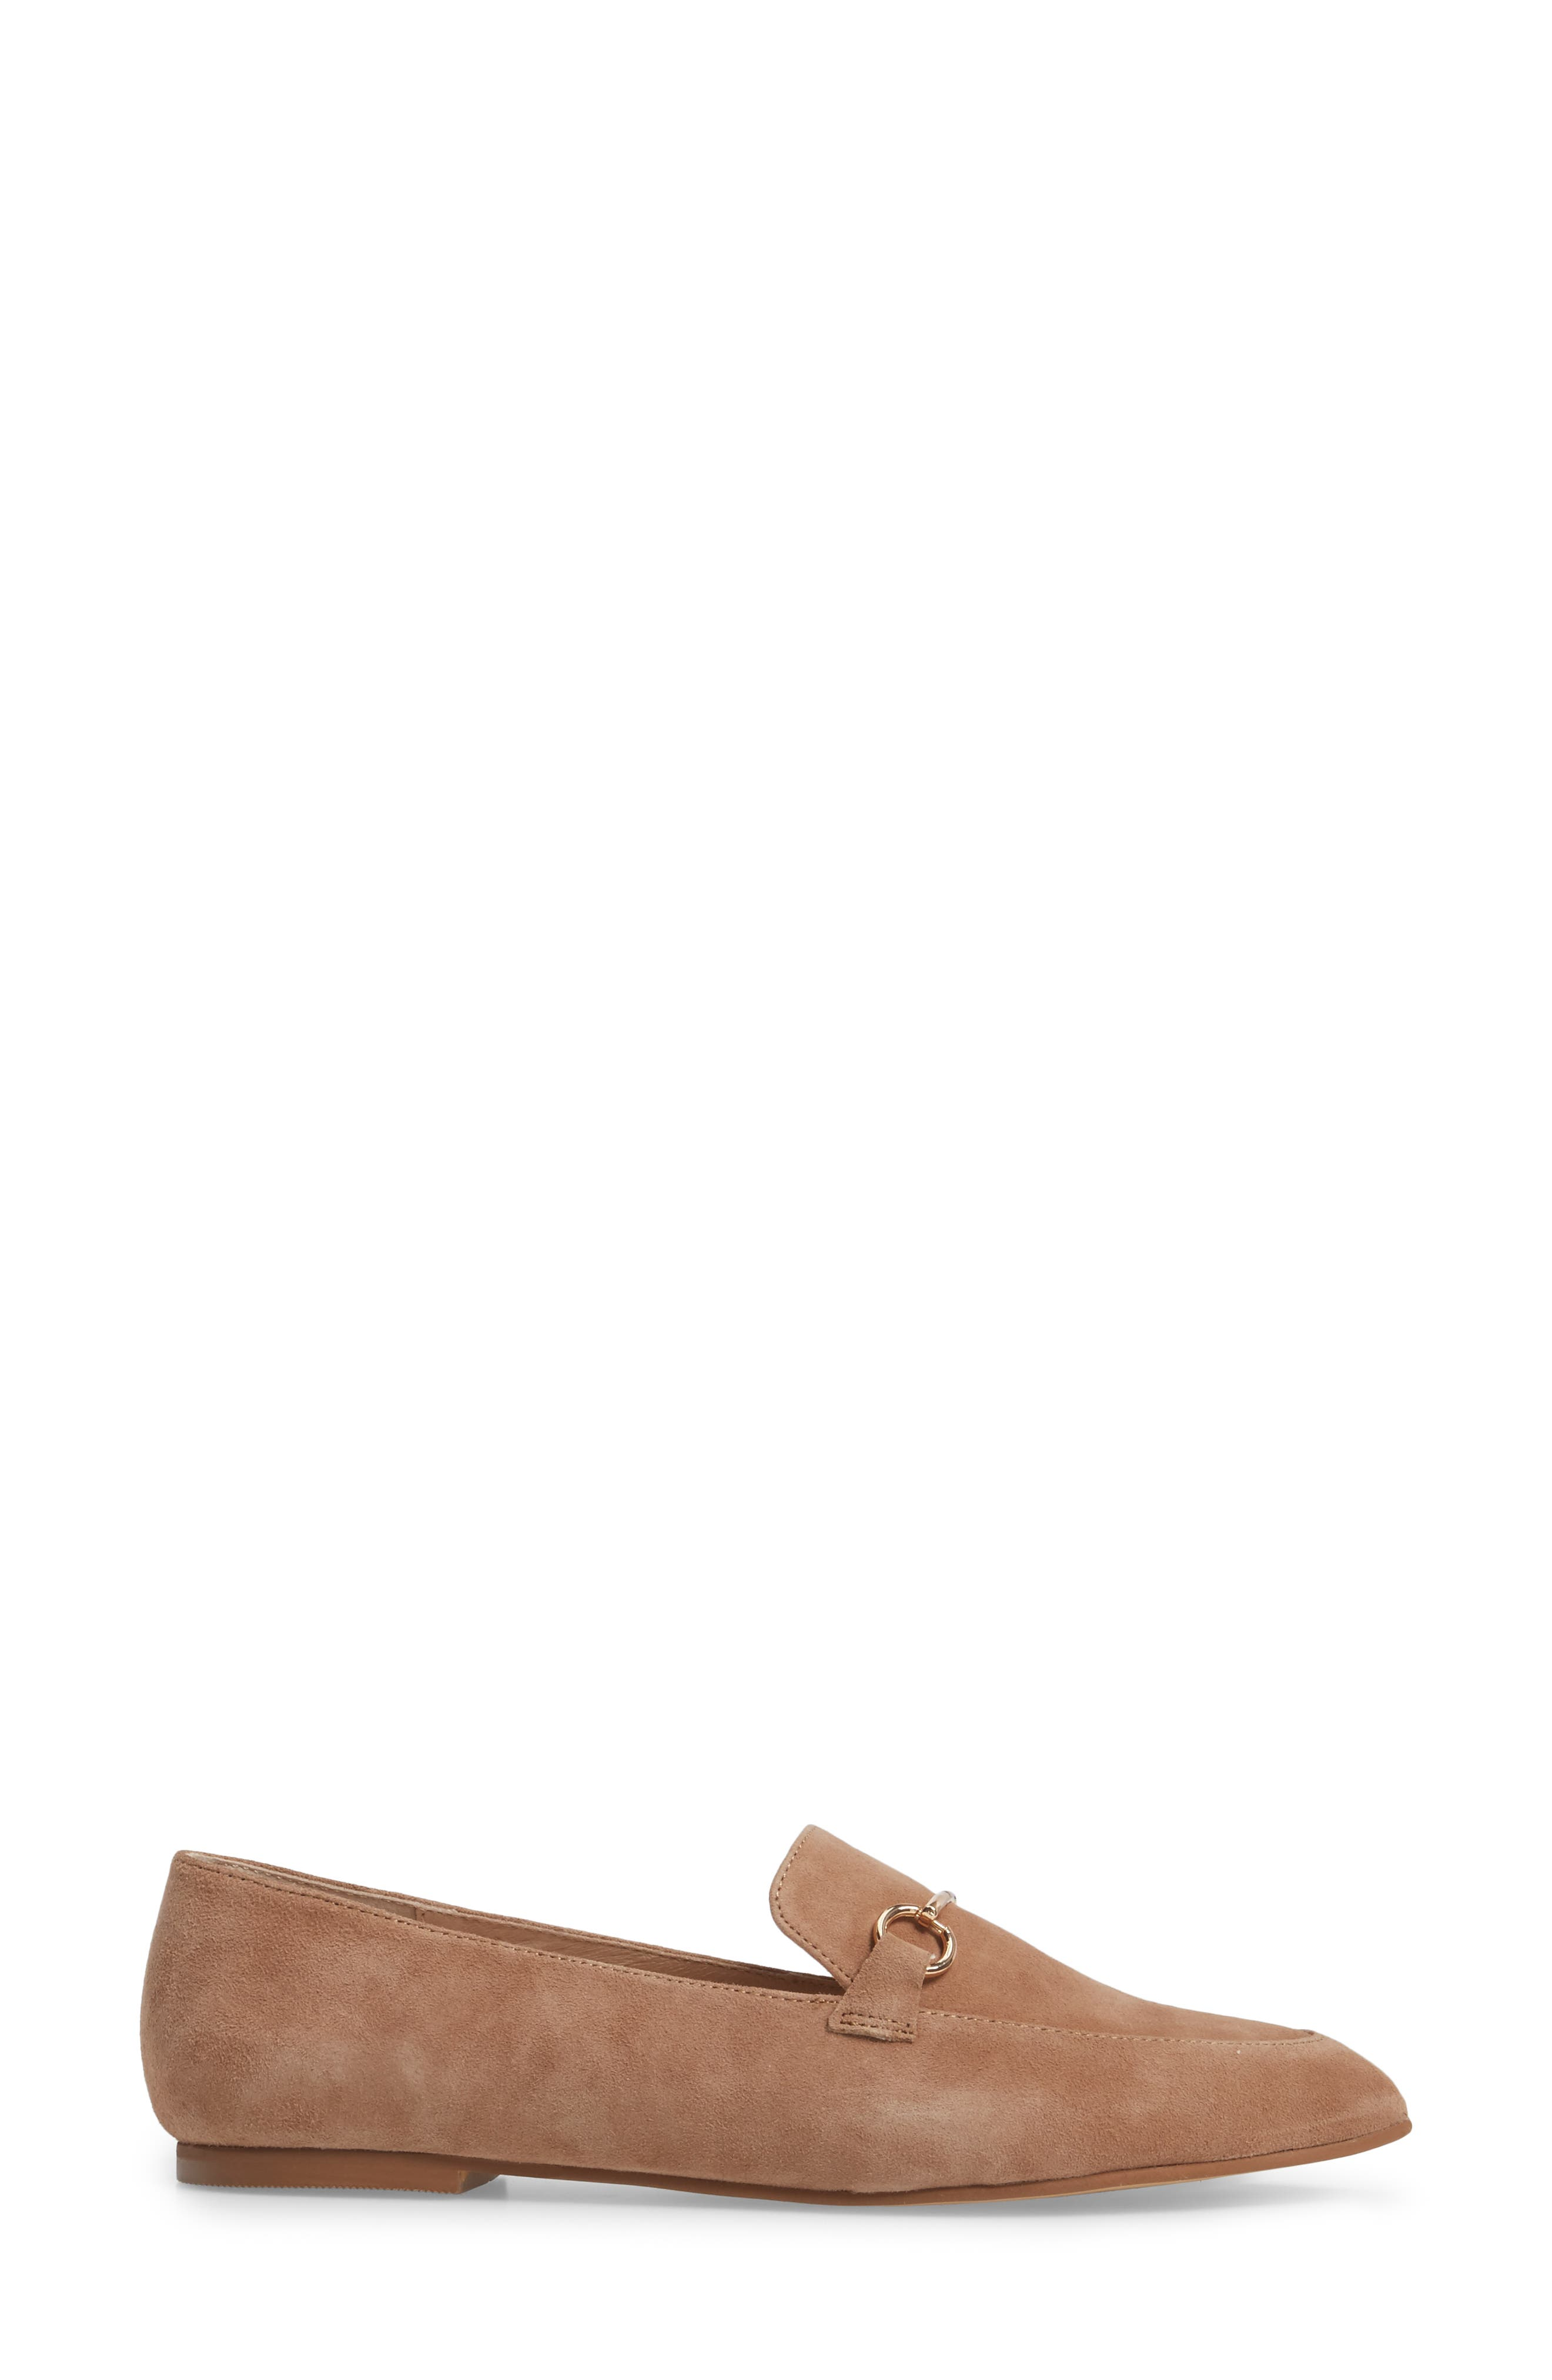 Cambrie Loafer Flat,                             Alternate thumbnail 3, color,                             Clay Suede